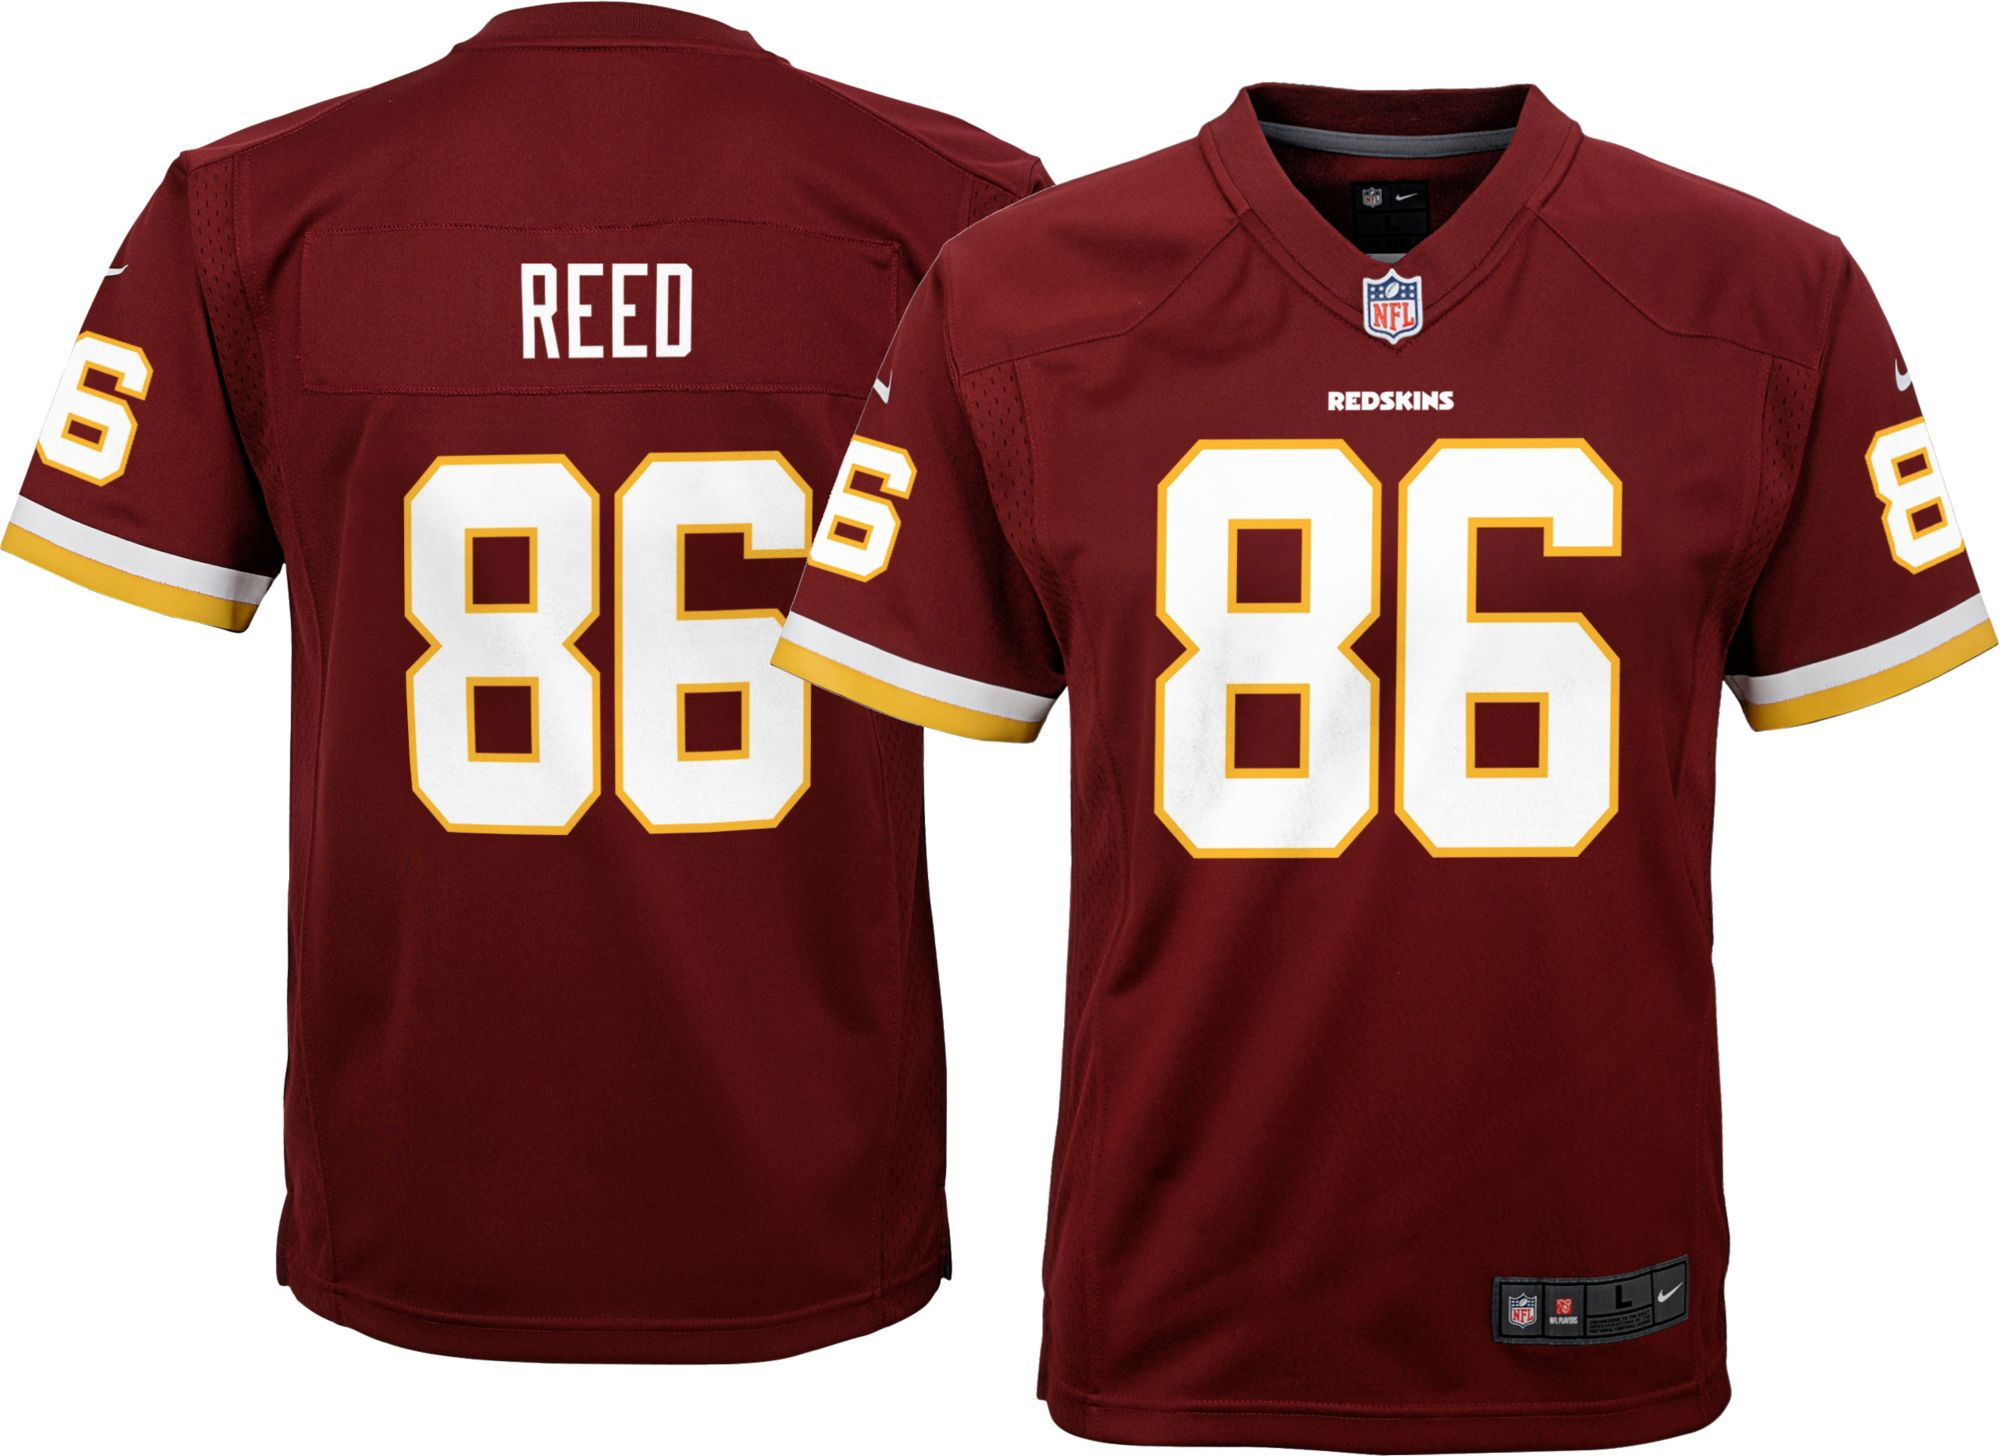 jordan reed jersey cheap